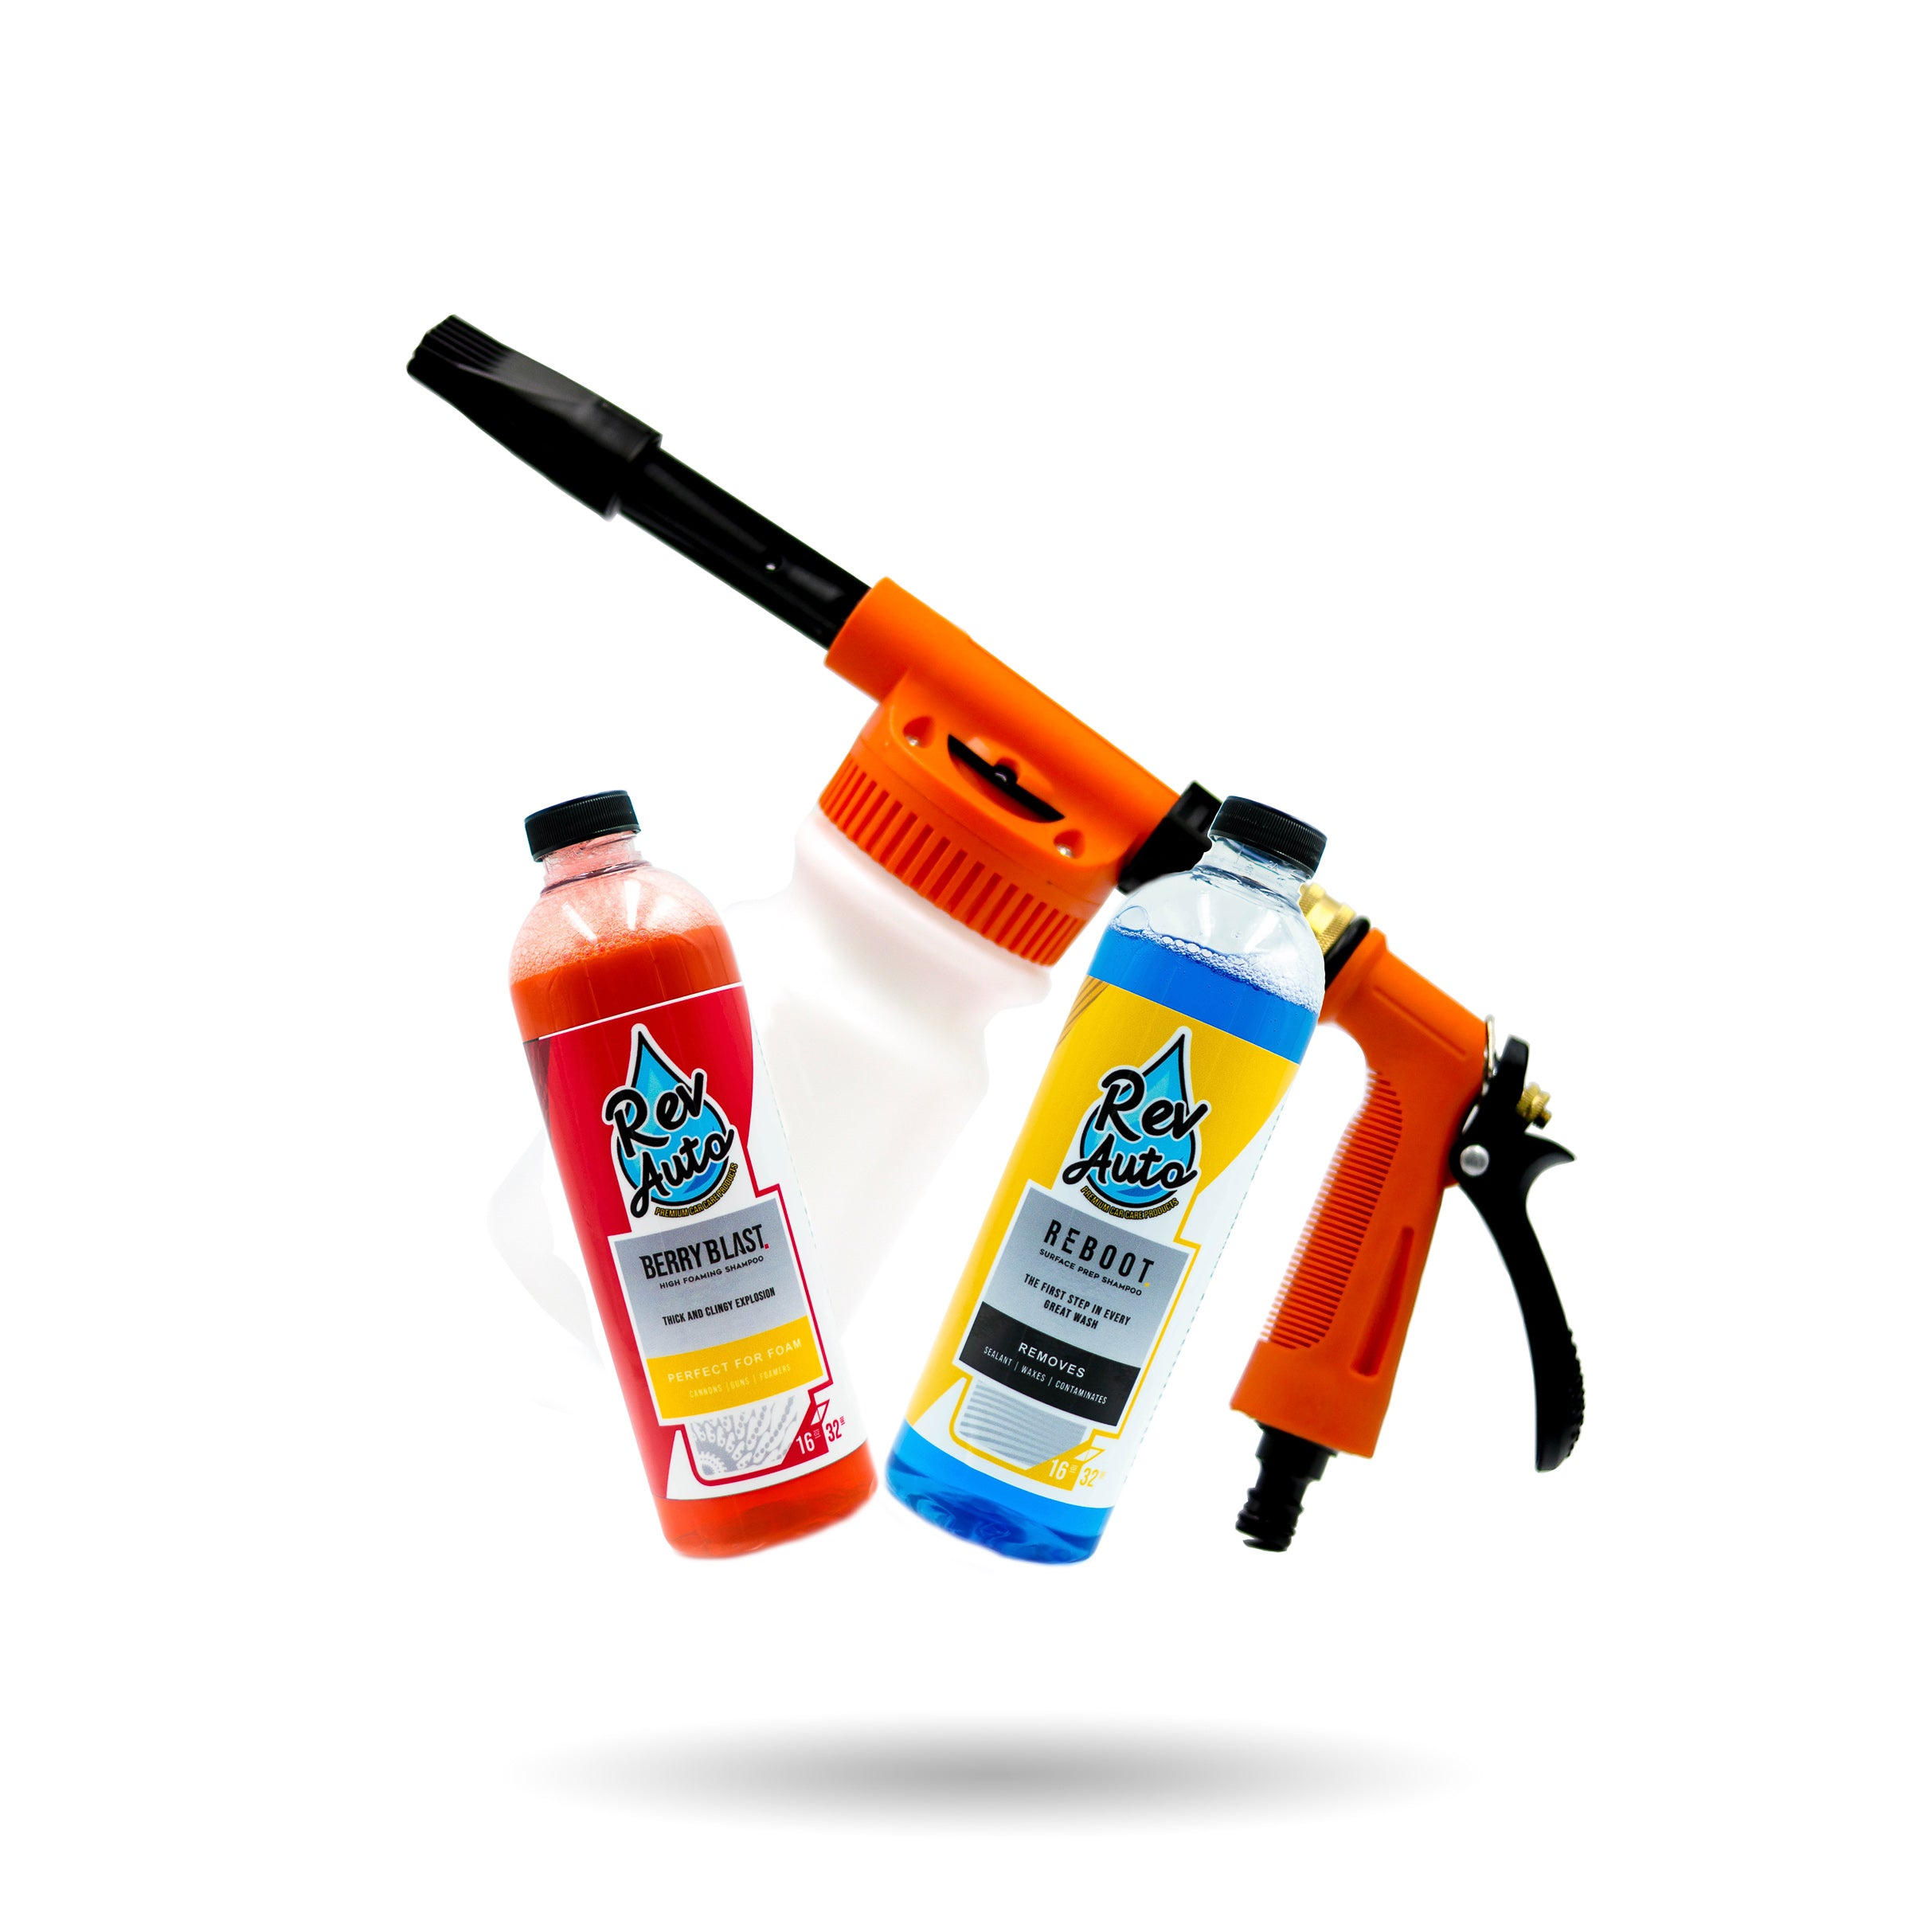 FoMas Foam Gun + Soap Bundle